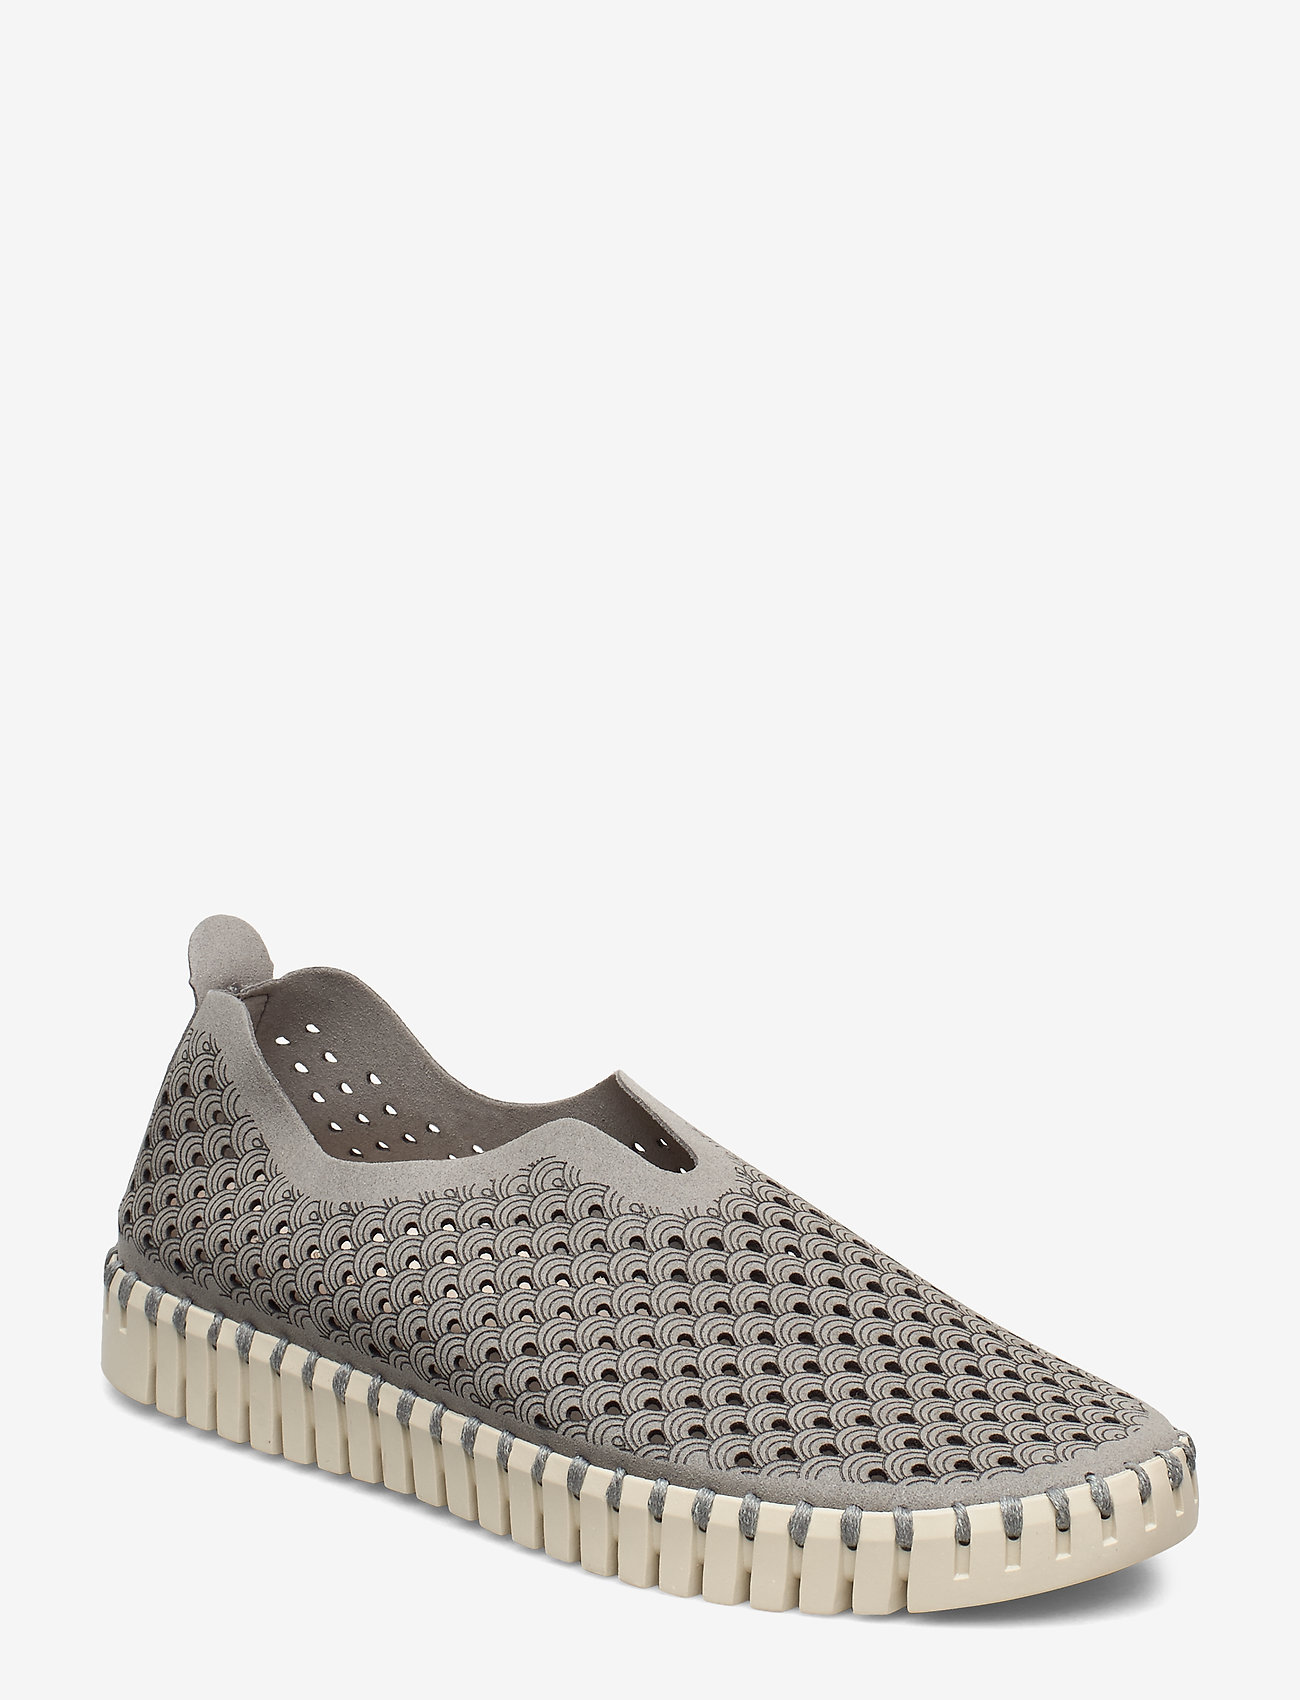 Ilse Jacobsen - Flats - slip-on sneakers - grey - 0